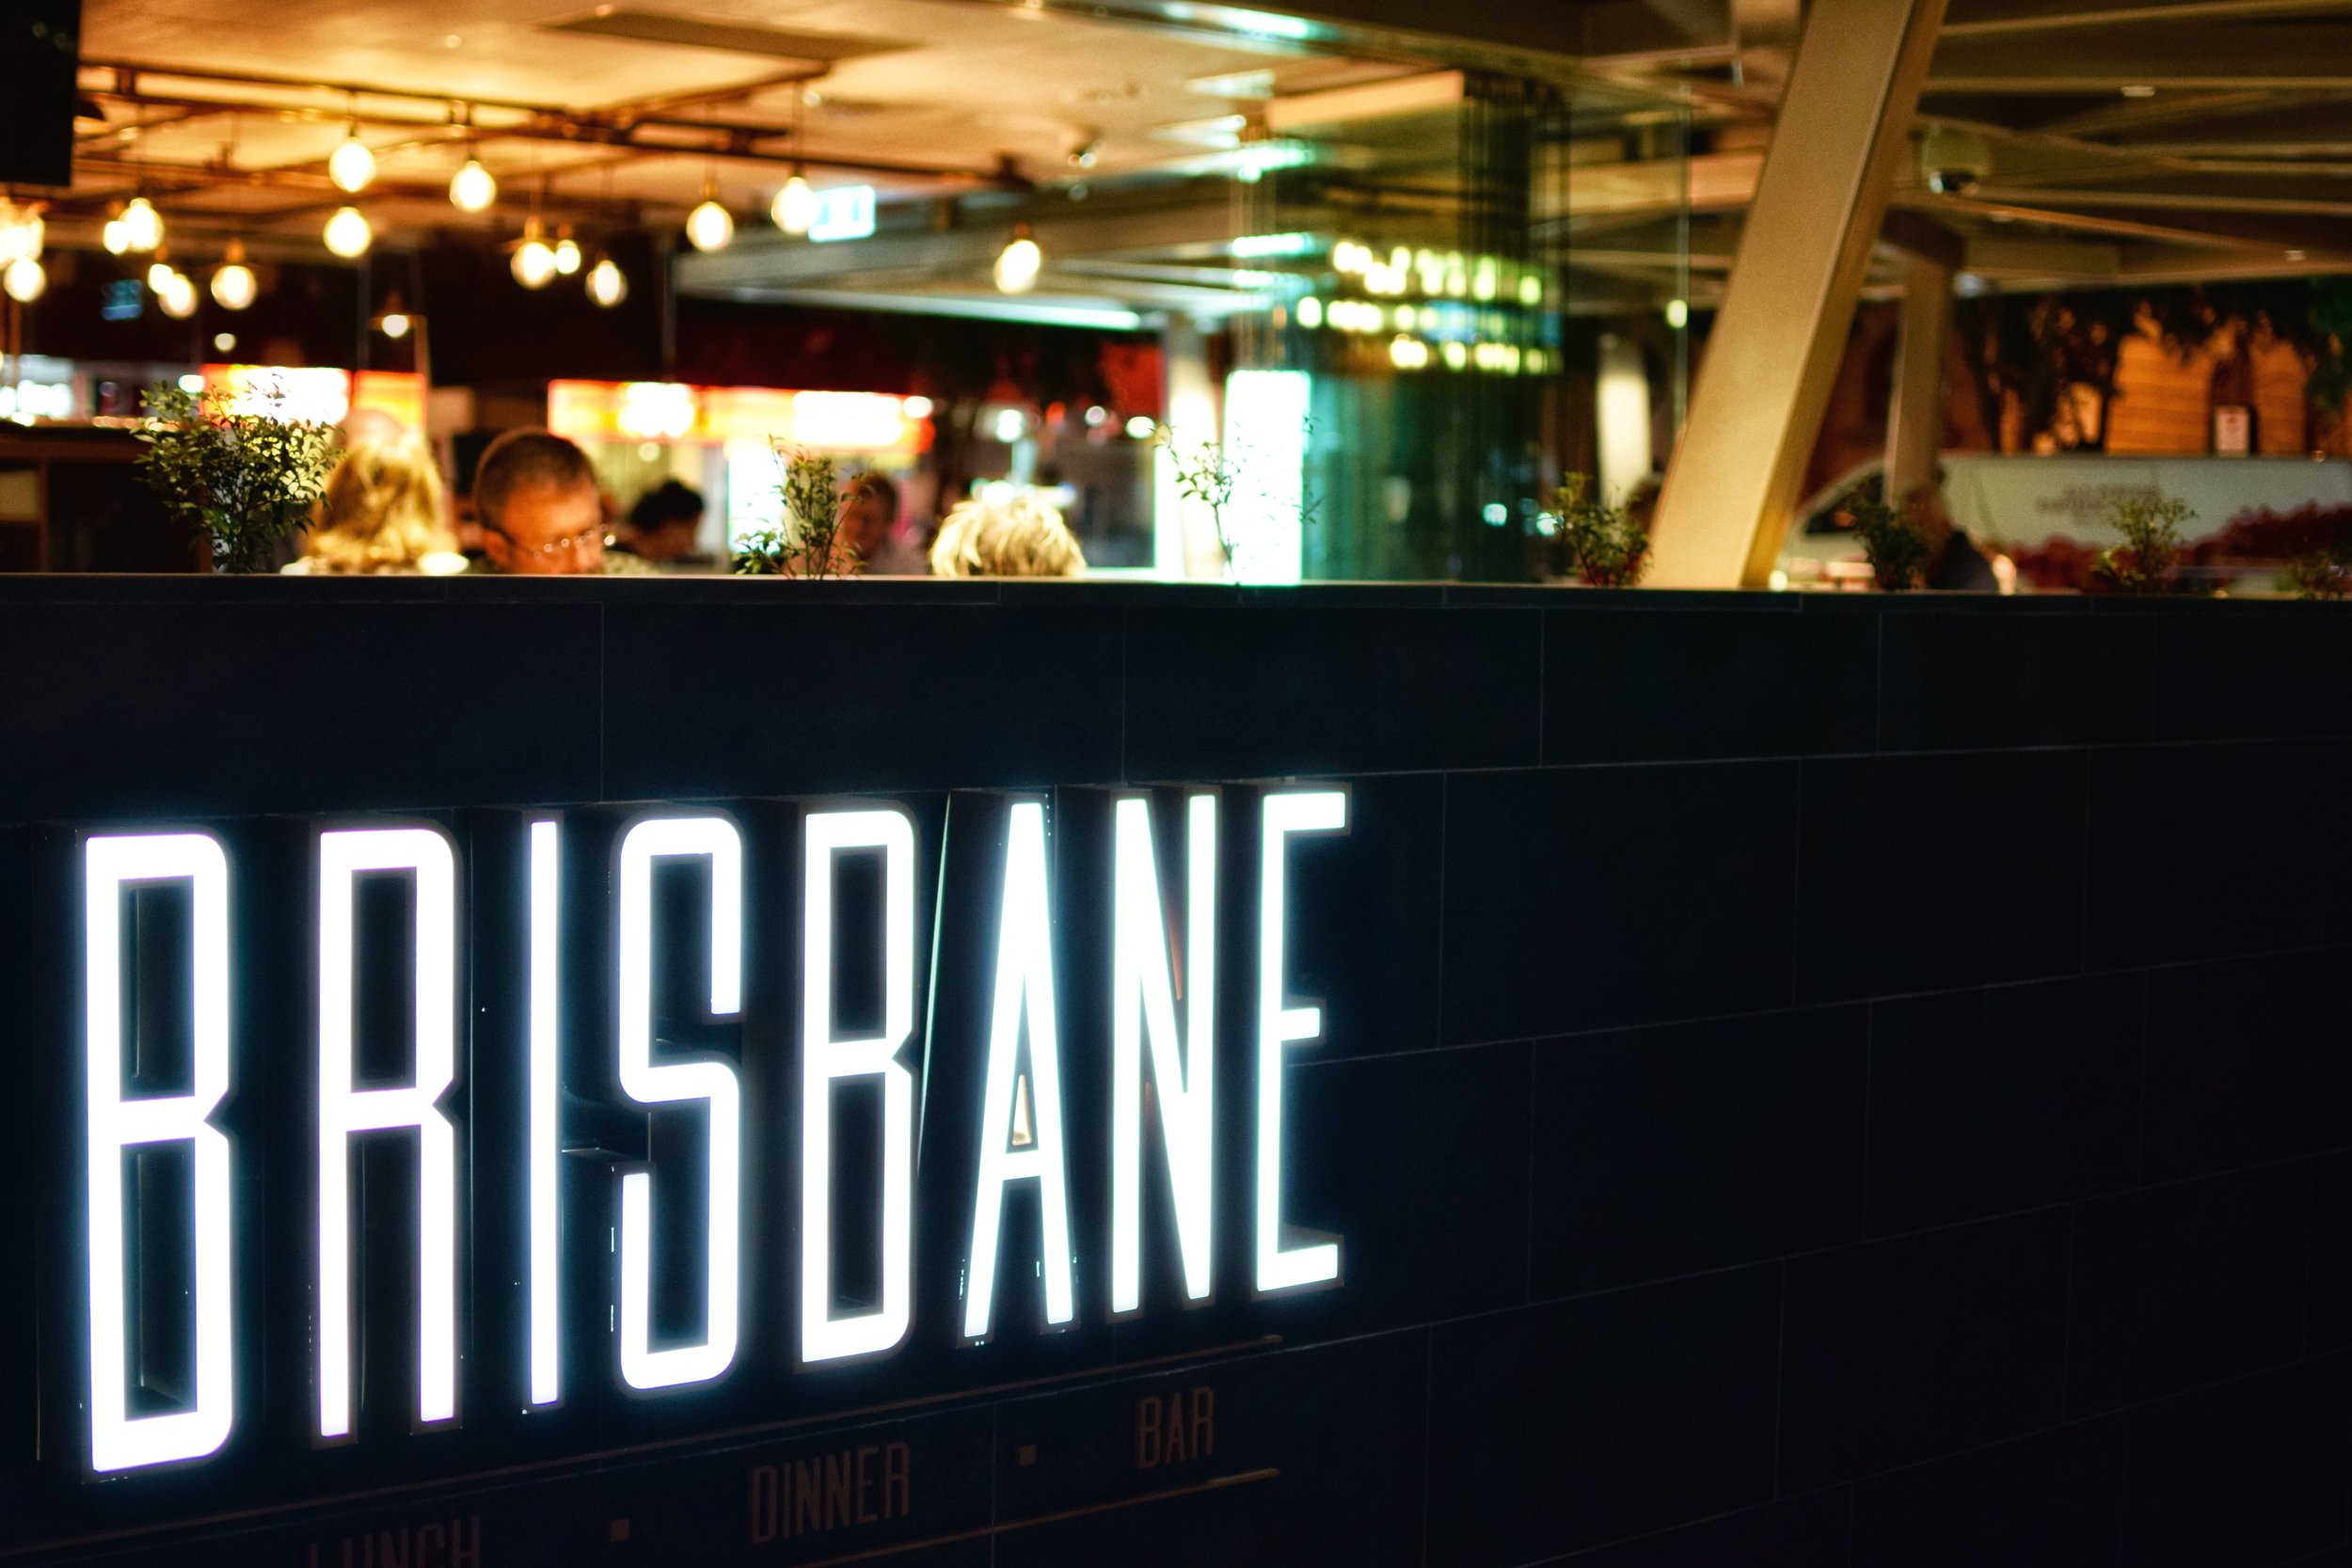 Brisbane with Air New Zealand - Return Seat+Bag Economy Class flightsfrom Auckland $700from Christchurch $695from Wellington $698Anytime, subject to availability and until sold out.Closeout and blackout periods apply over school holidays and peak holiday periods. Availability of seats is likely to be very limited over this time.Sale ends: 10 Dec 2019